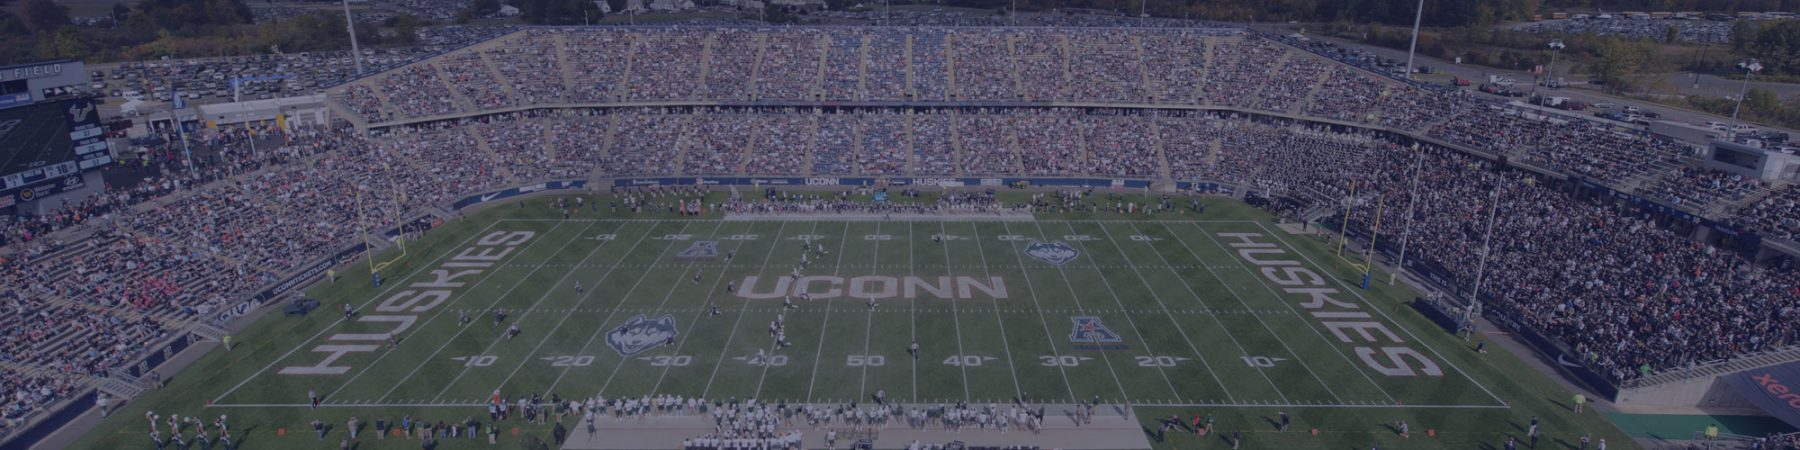 Rentschler stadium: UConn Online Graduate Certificate in Leadership and Sport Management